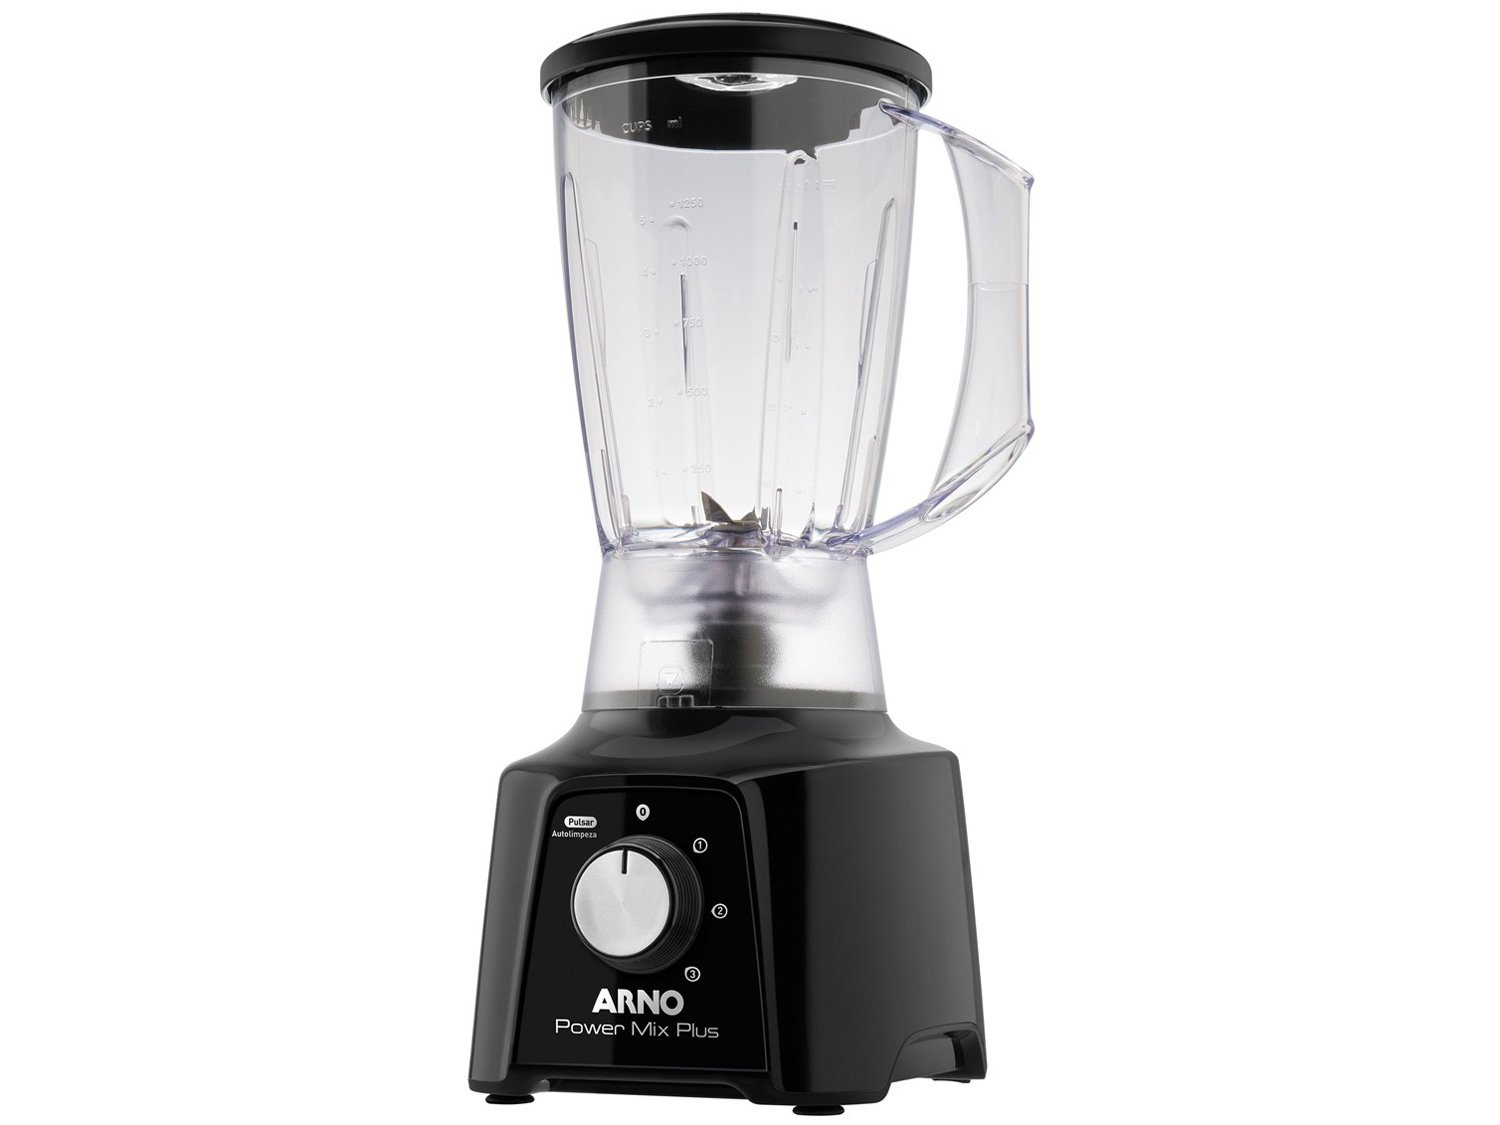 Liquidificador Arno Power Mix Plus LQ20 com 3 Velocidades 550W – Preto - 110V - 0